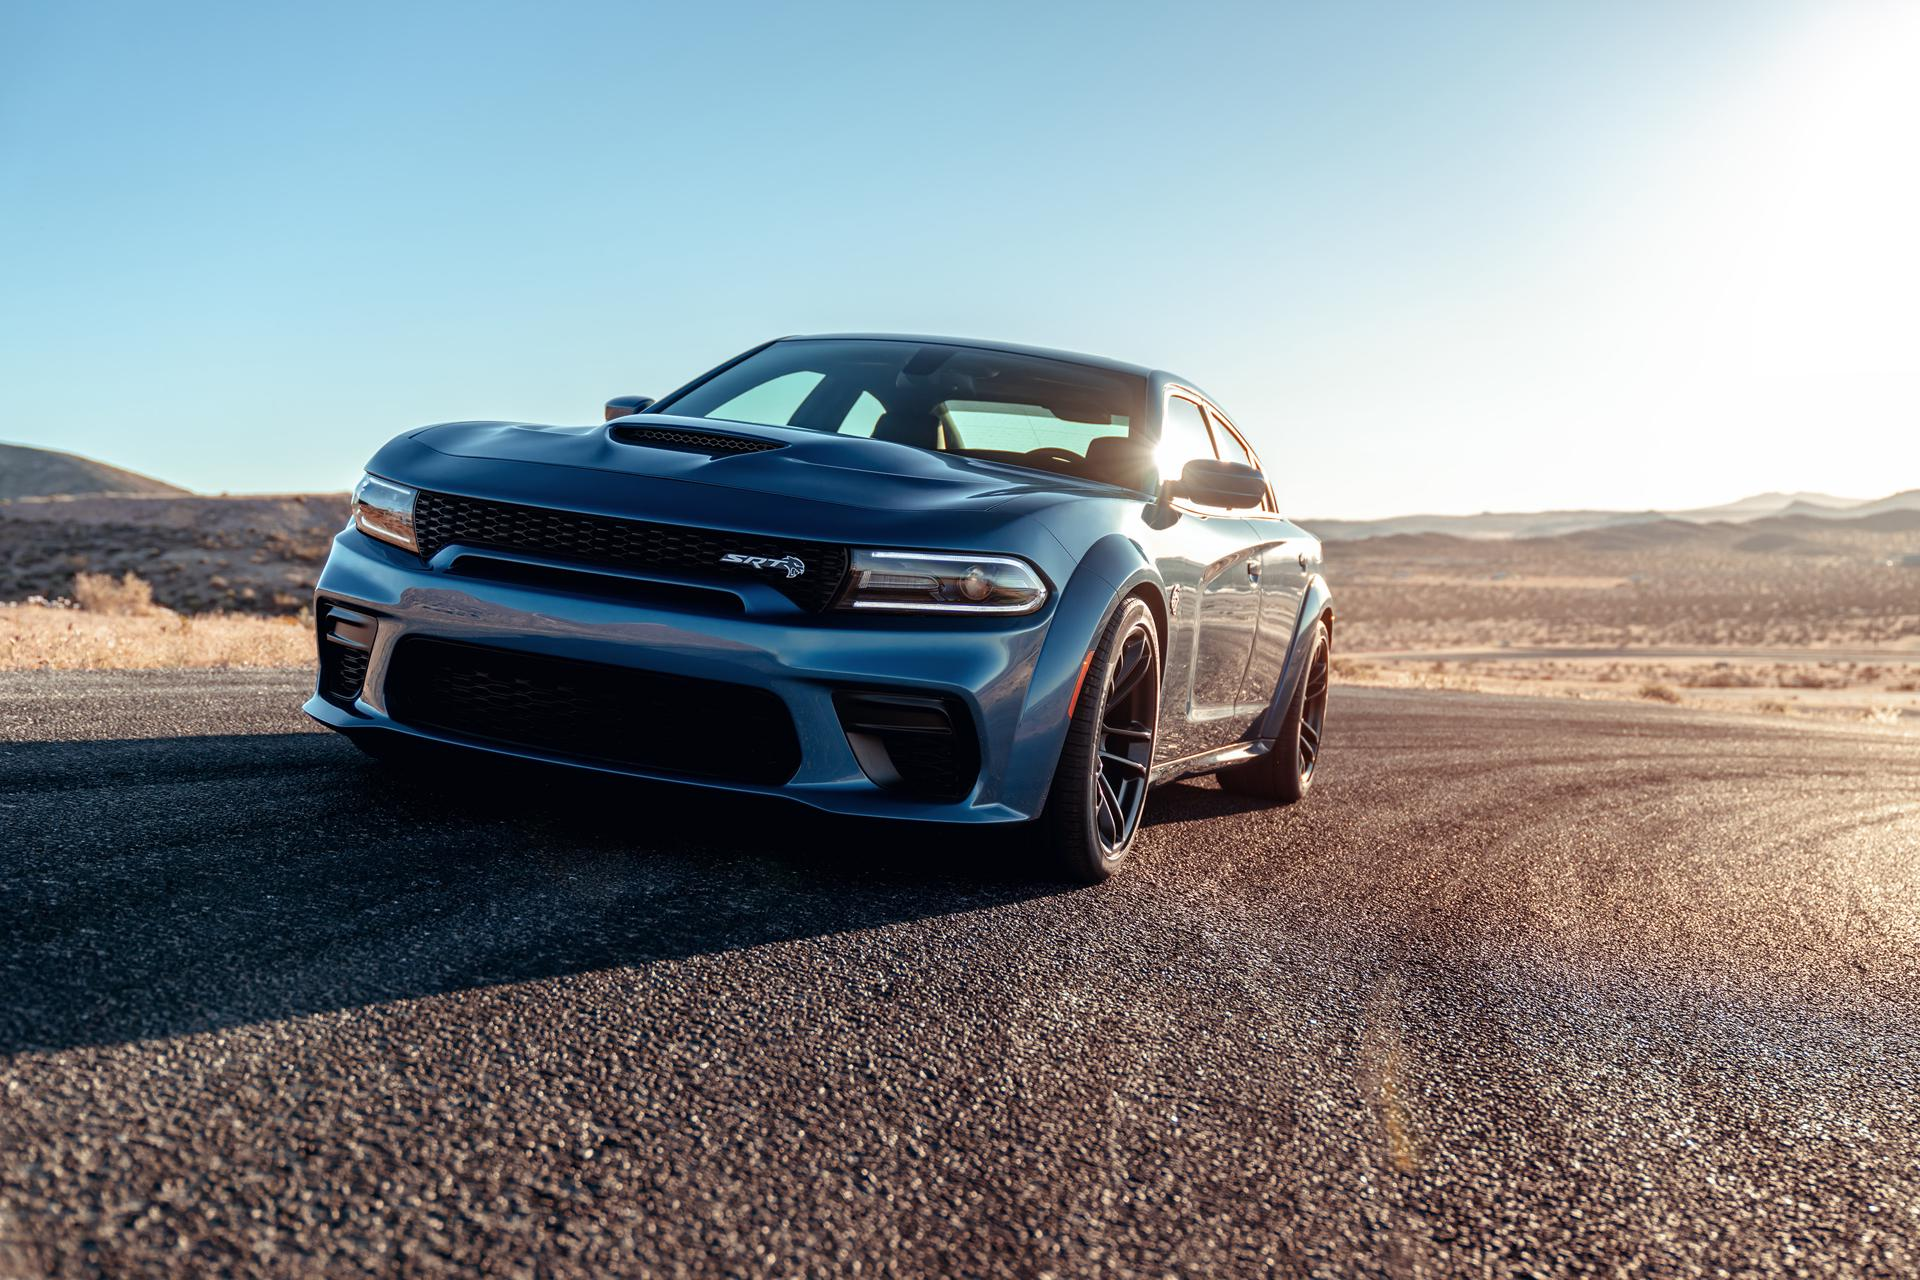 The Dodge Charger Hellcat Widebody is a full-figured sports sedan